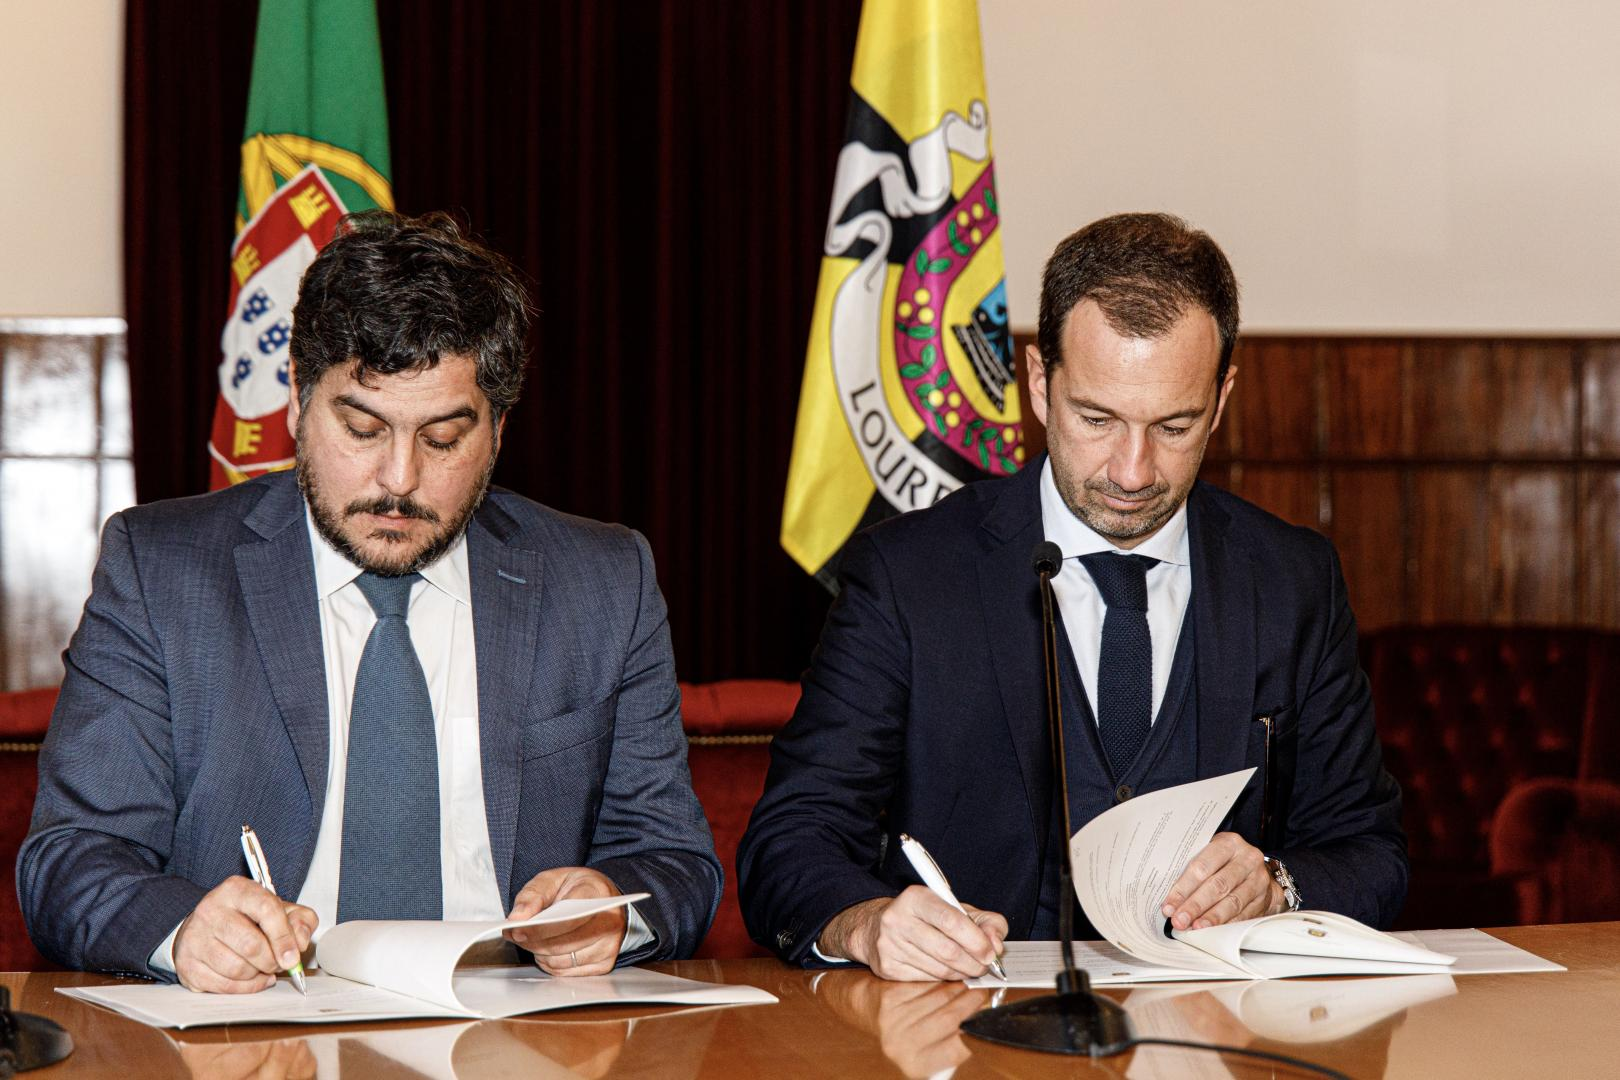 Sporting Clube de Portugal and Loures City Council renew their relationship